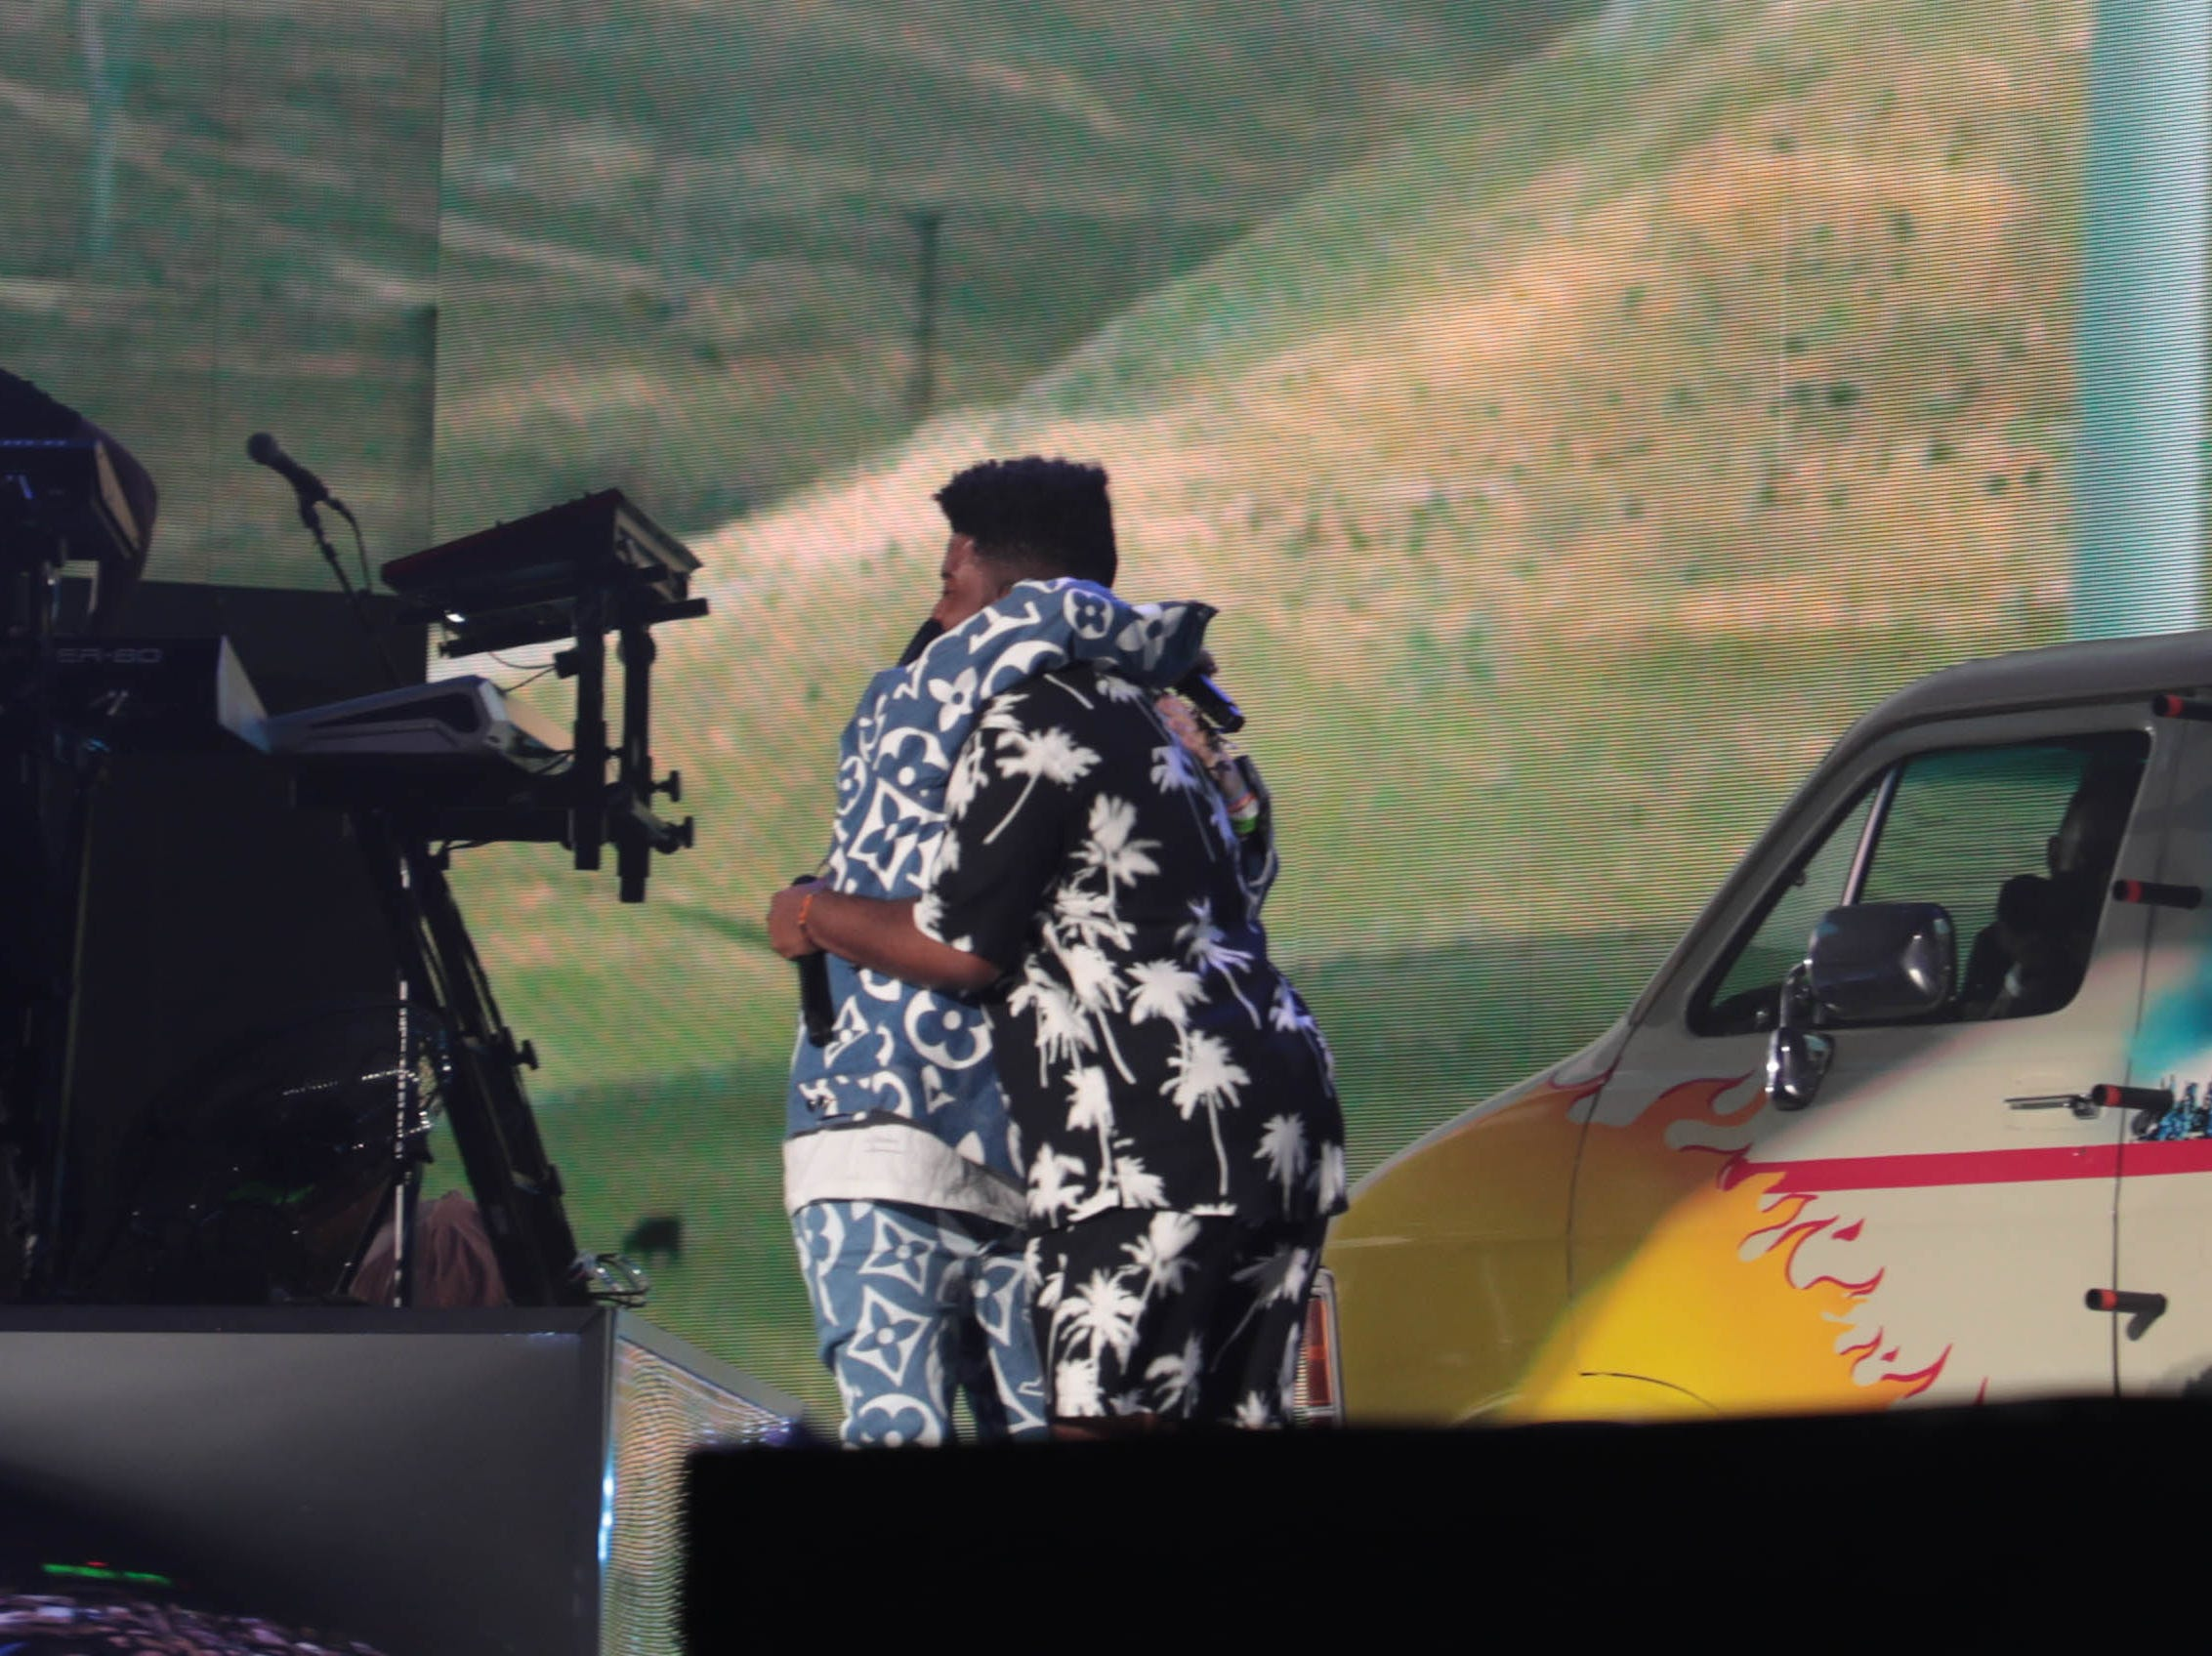 Billie Eilish and Khalid hug at the Coachella Valley Music and Arts Festival on Sunday, April 14, 2019 in Indio, Calif.